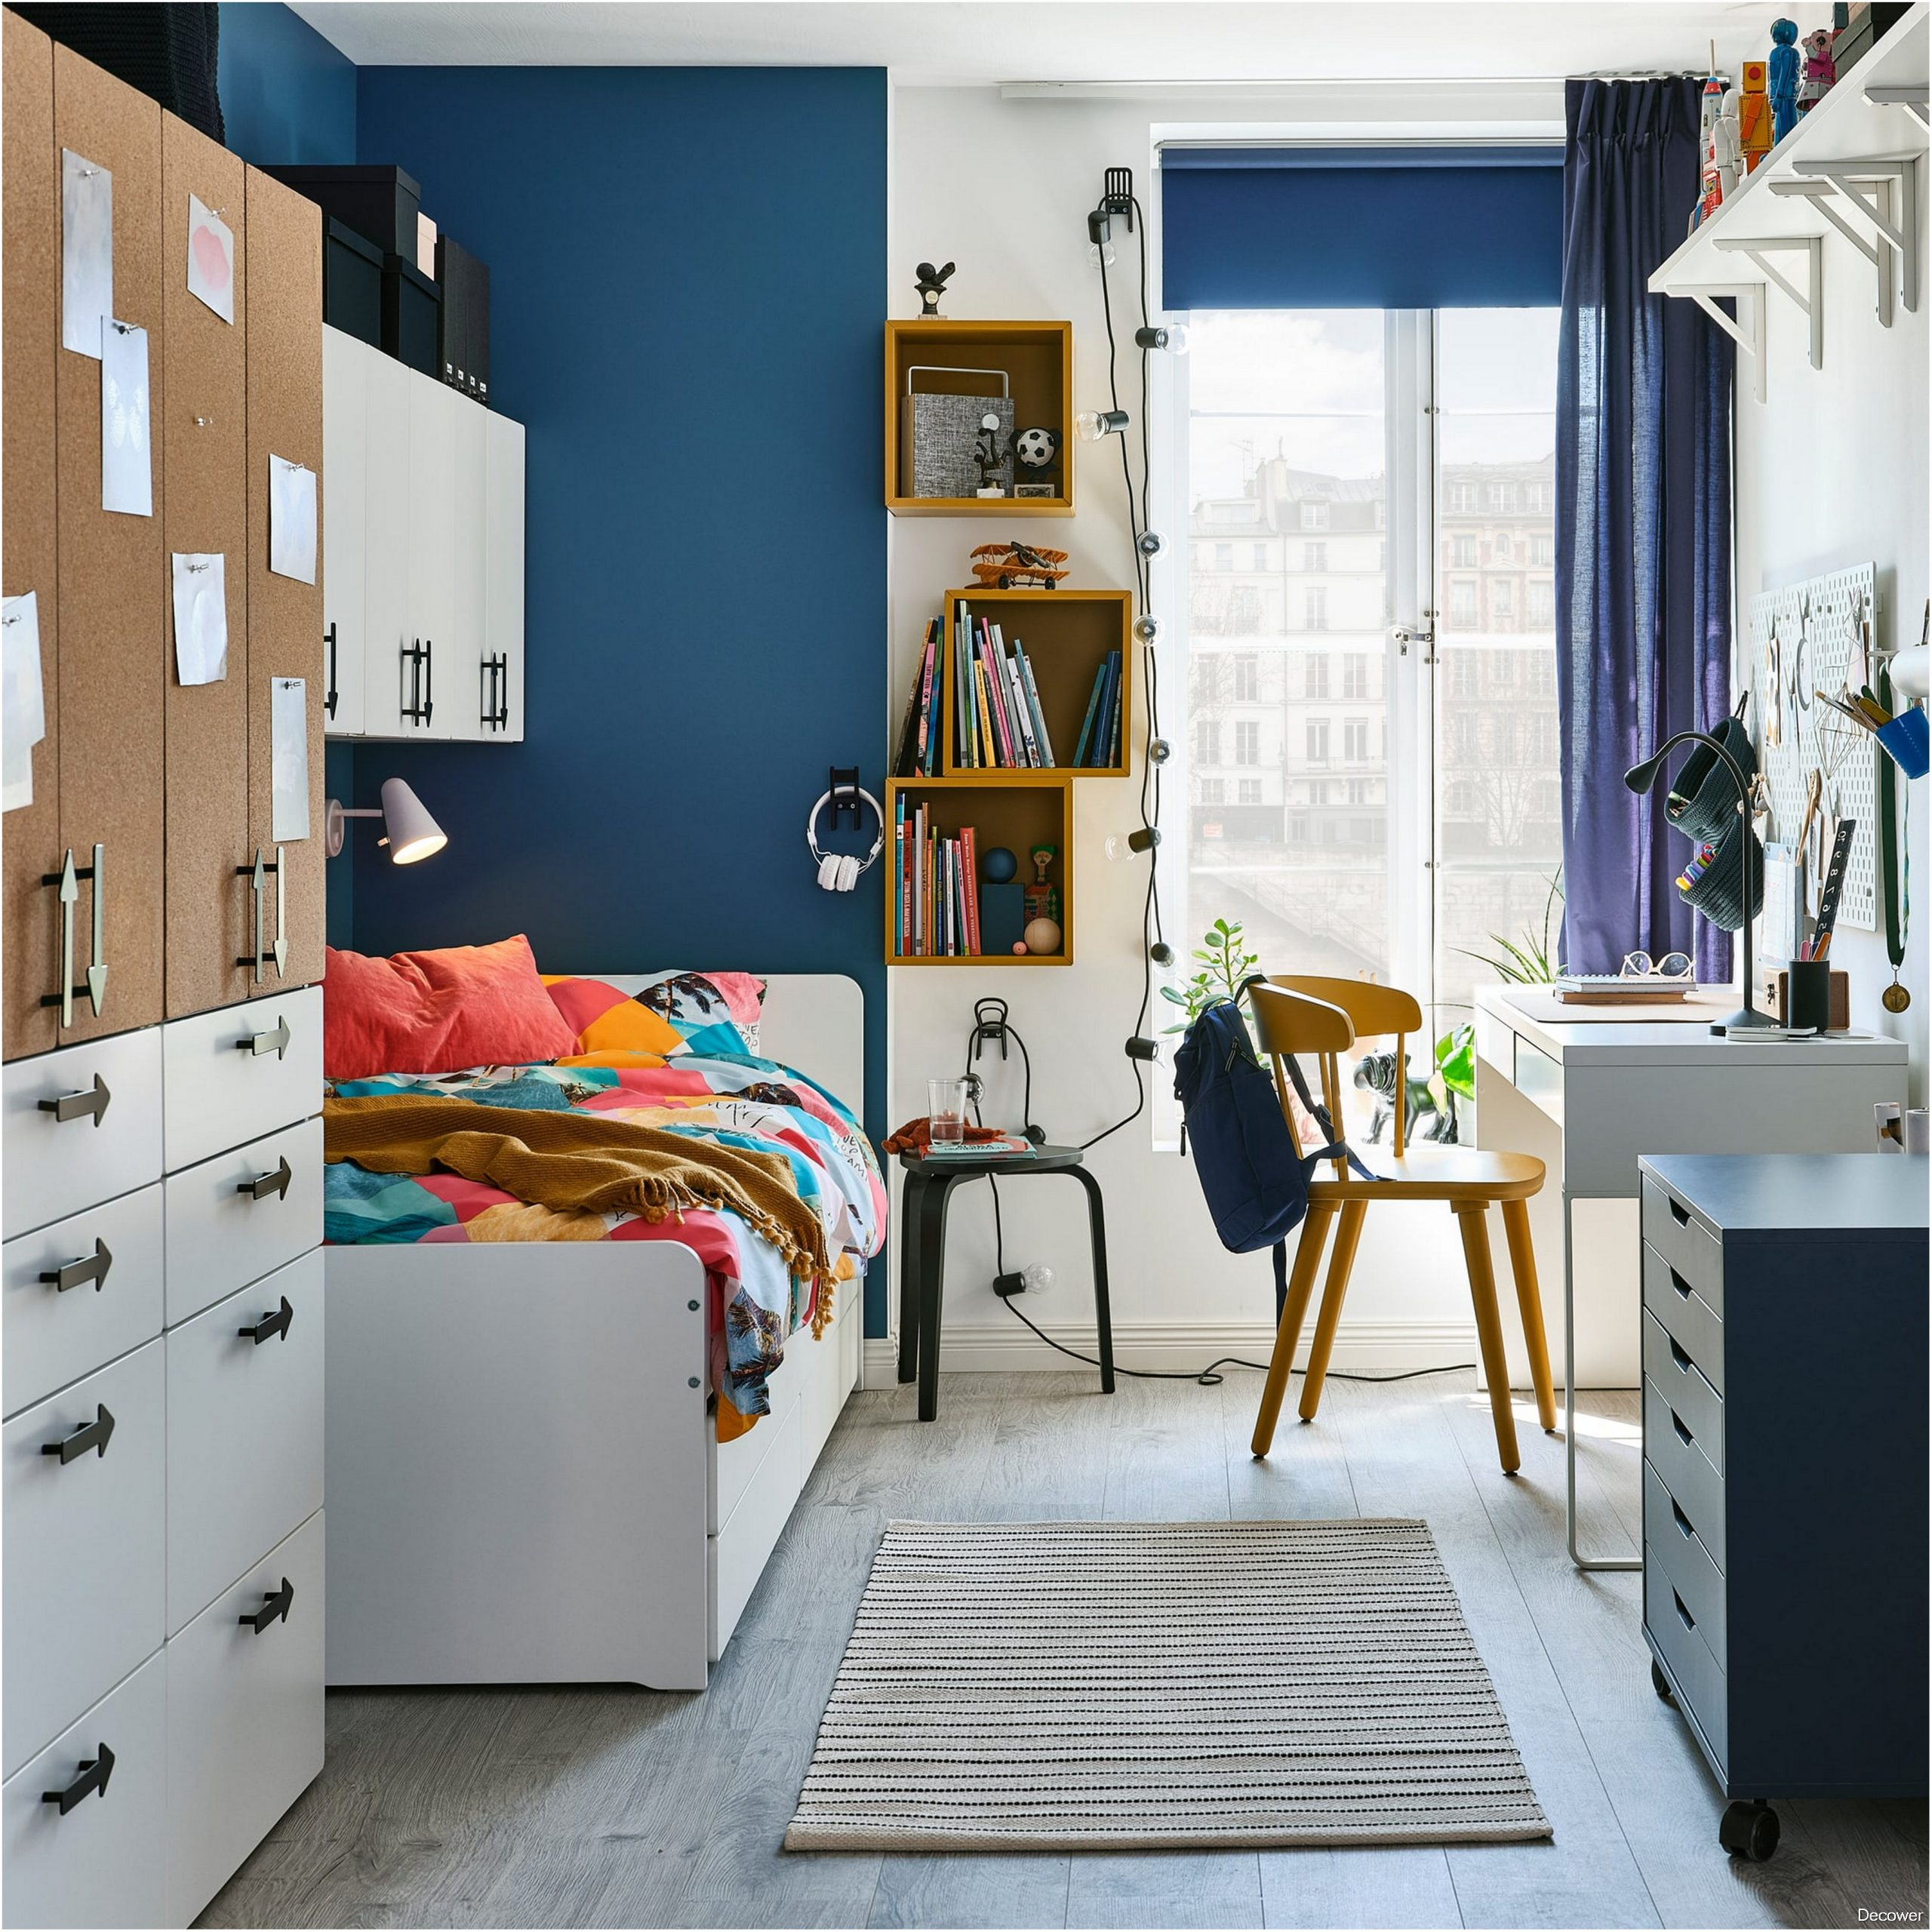 Teenager Bedroom - For Creativity and Personality Everything Is There